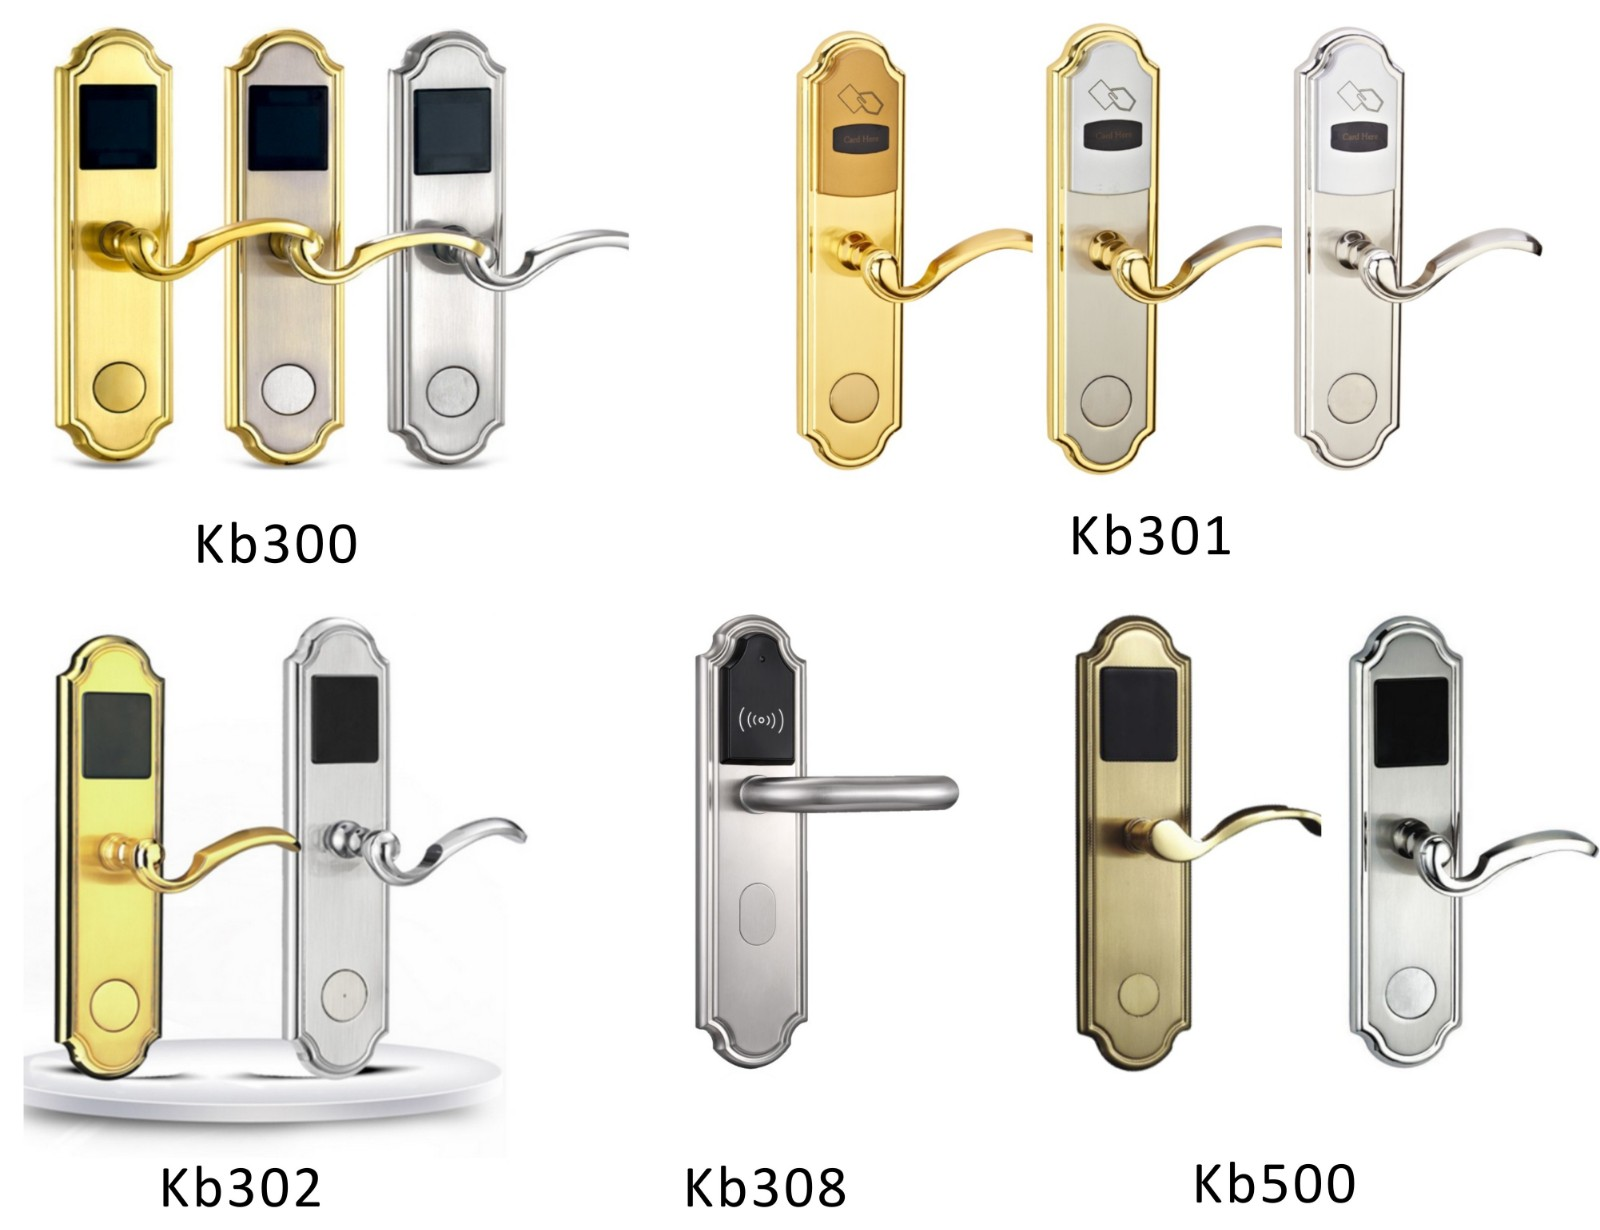 Eversunny key card door lock price stainless steel for home-1